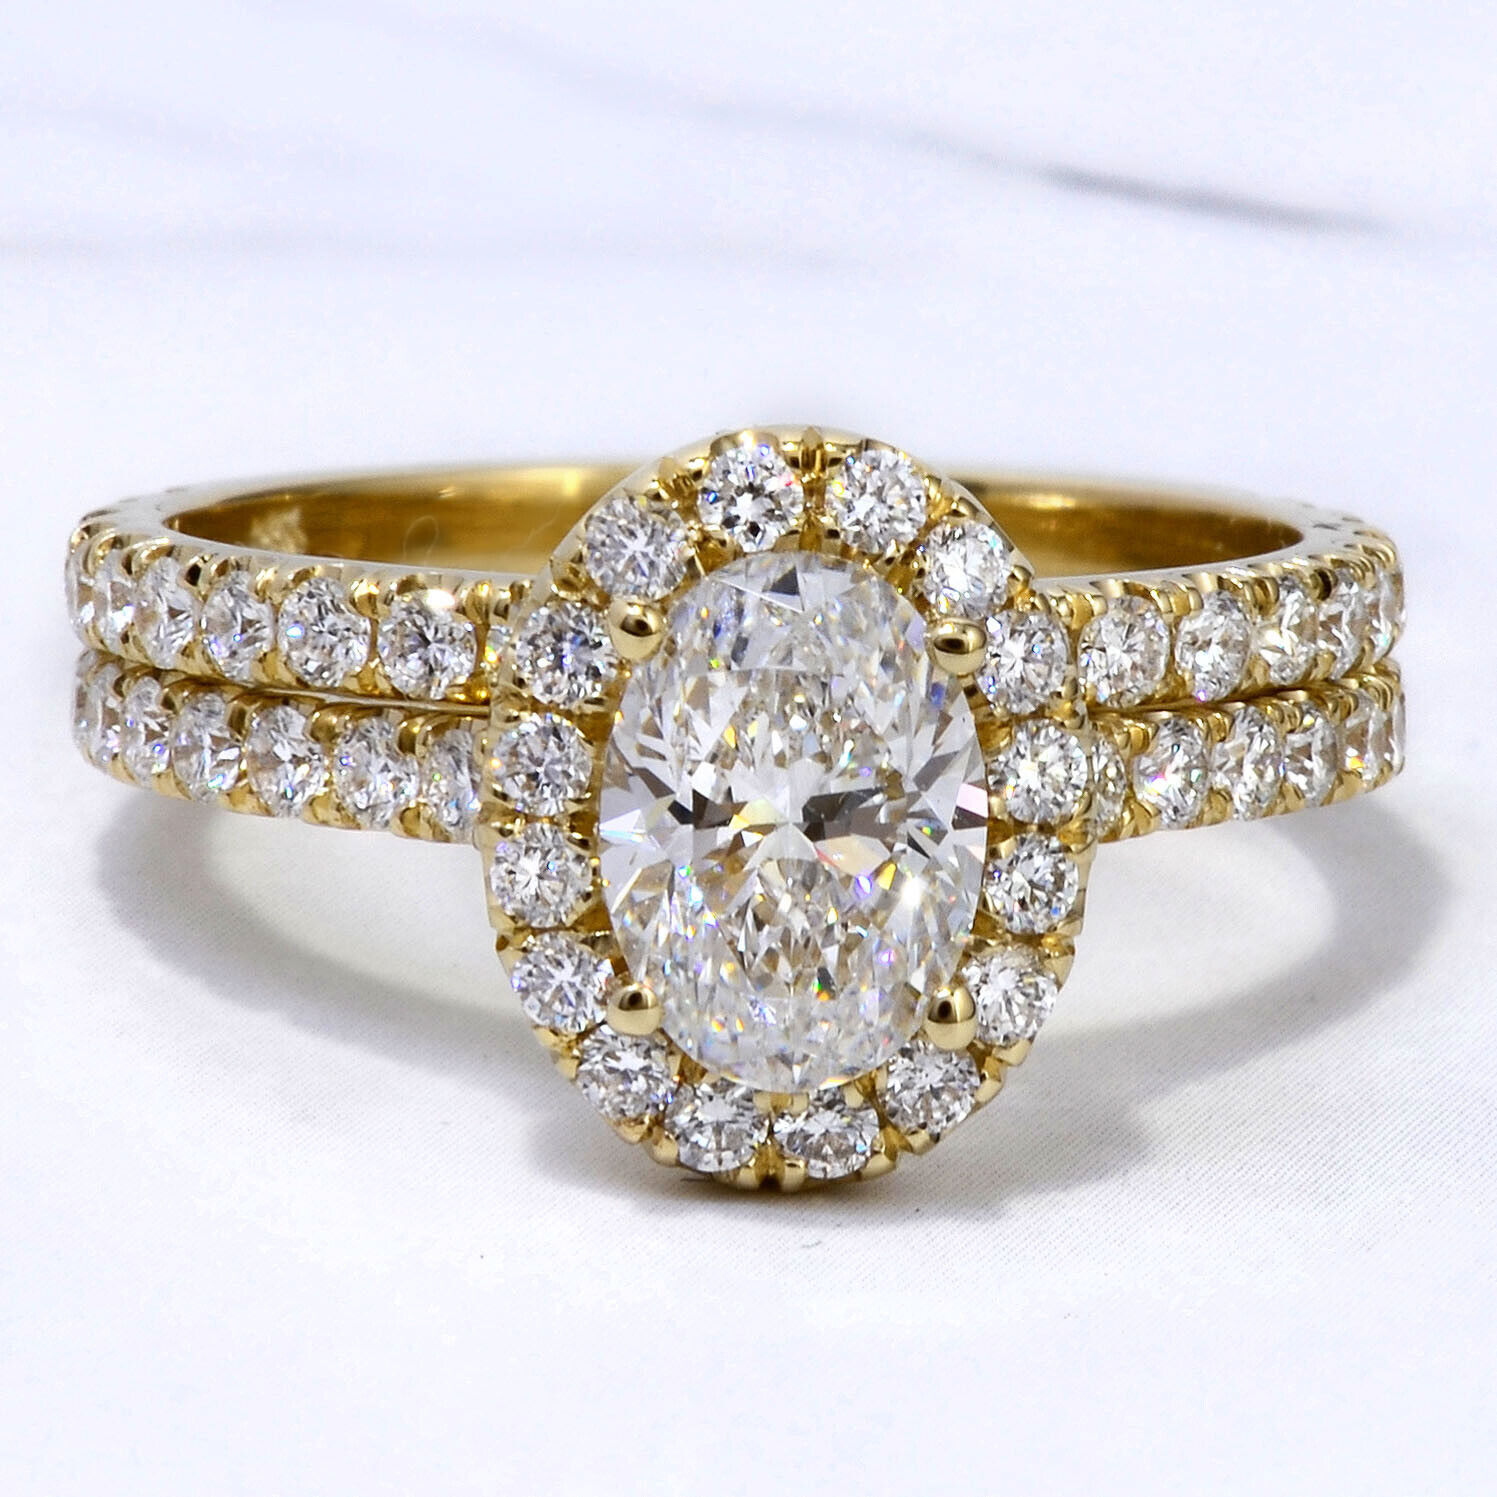 3.00 TCW Natural Oval Cut Halo Pave Diamond Engagement Wedding Set - GIA